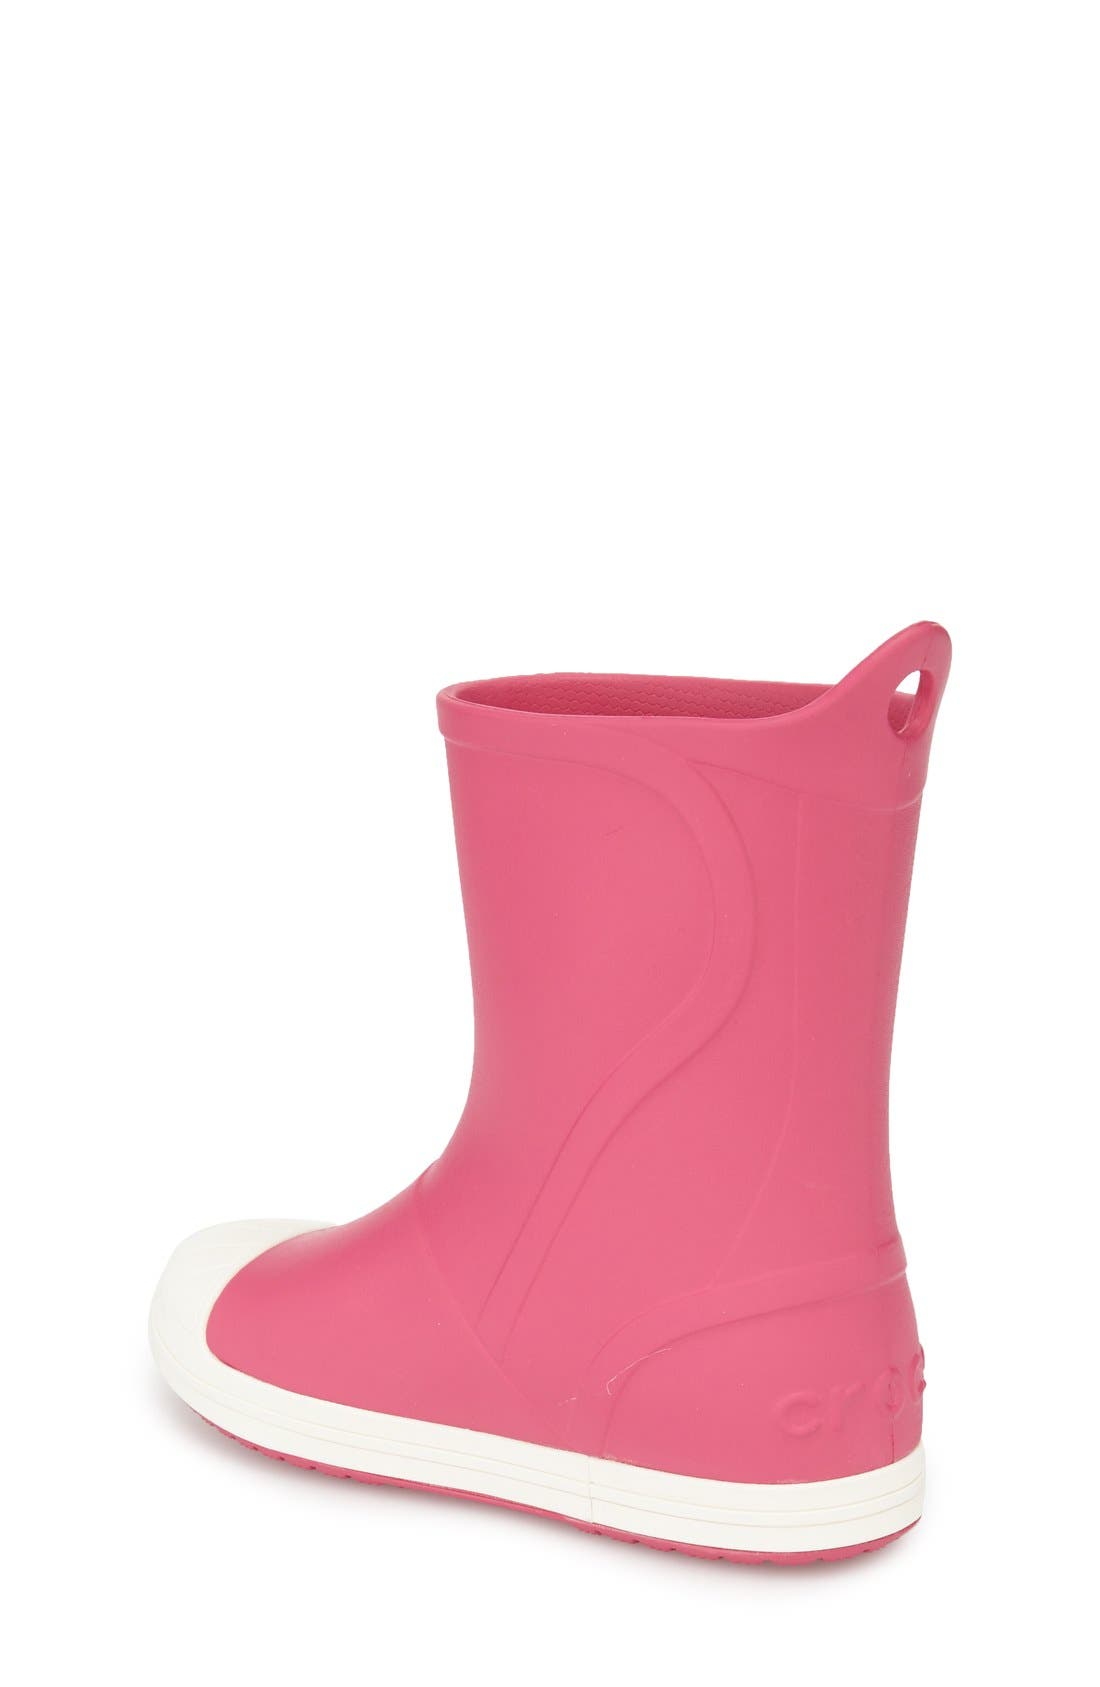 Bump It Waterproof Rain Boot,                             Alternate thumbnail 2, color,                             Candy Pink/ Oyster